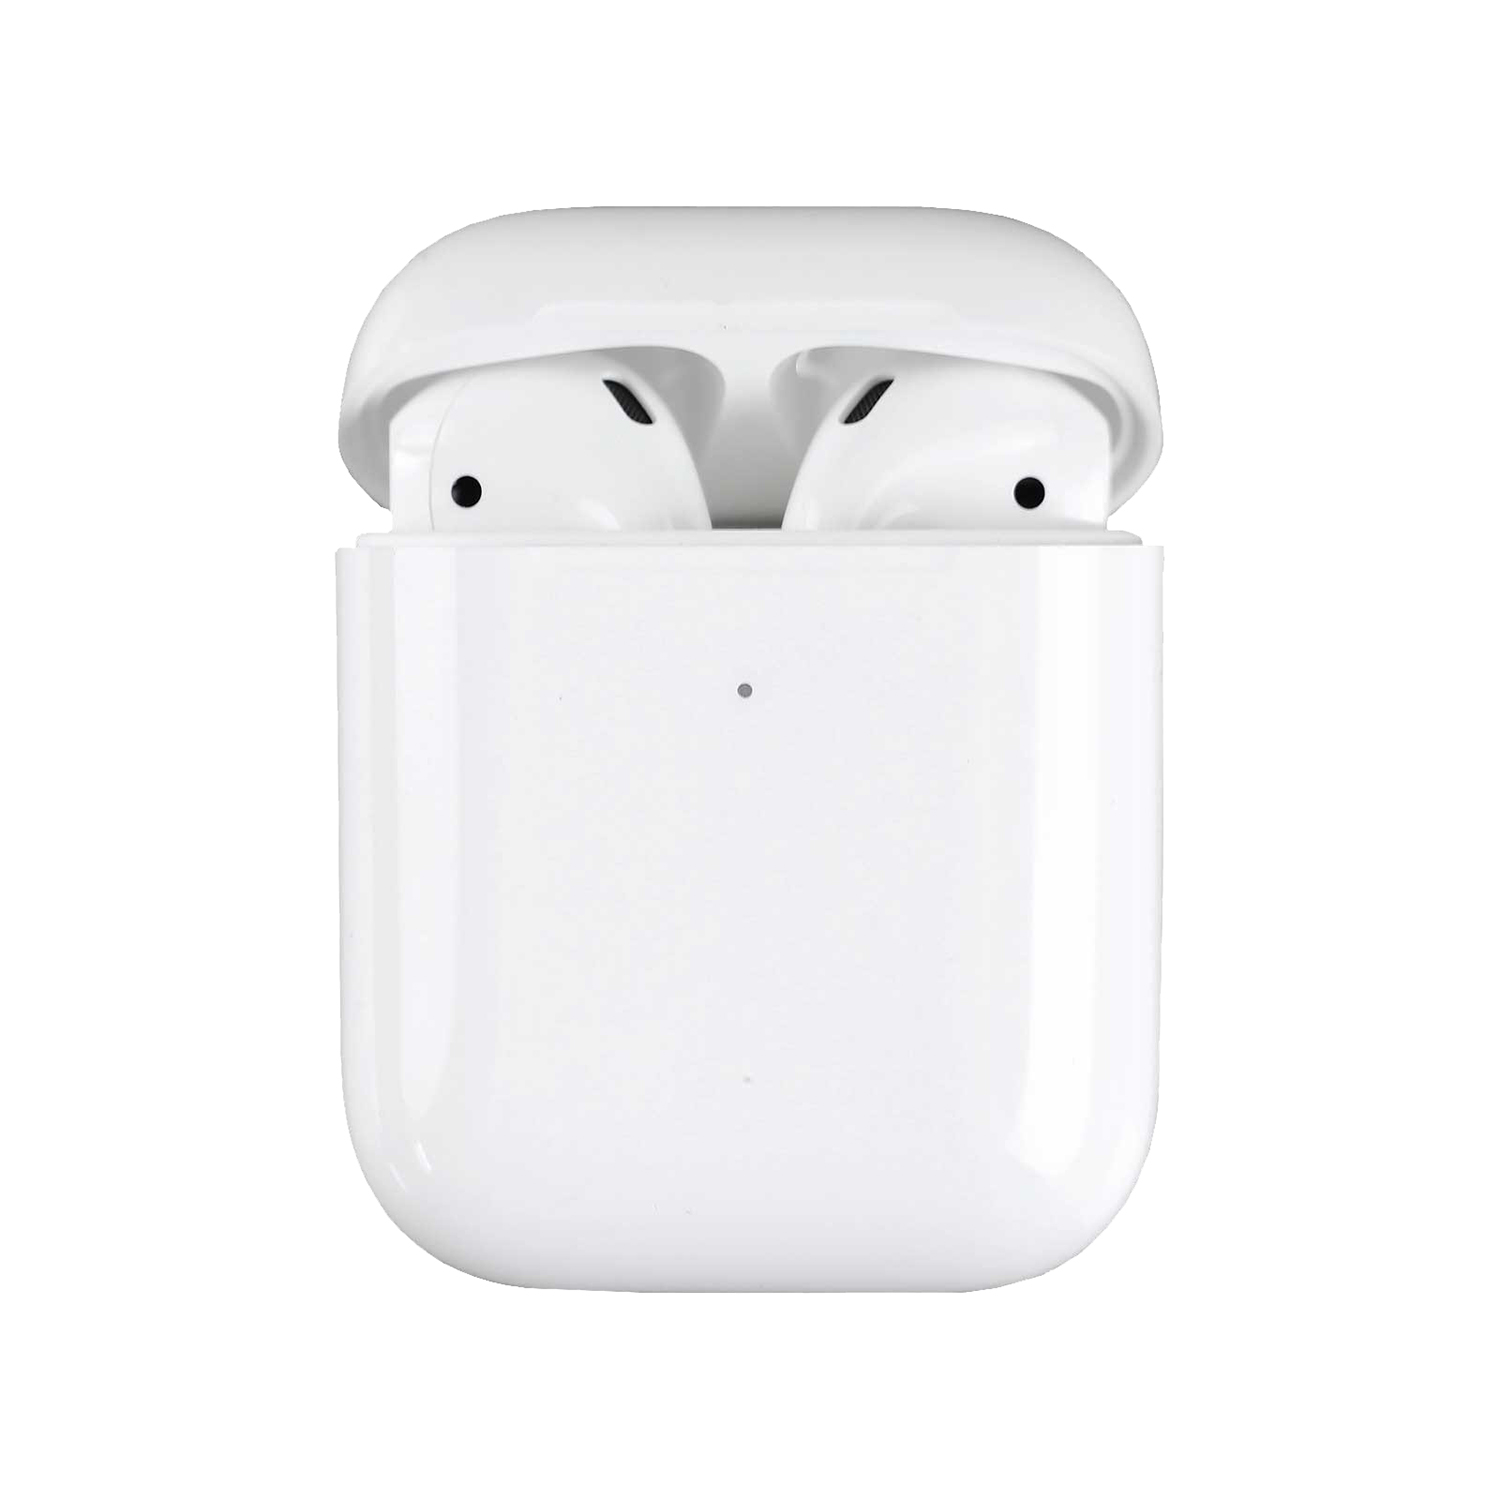 Desktops Apple AirPods With Charging Case Ref MV7N2ZM/A